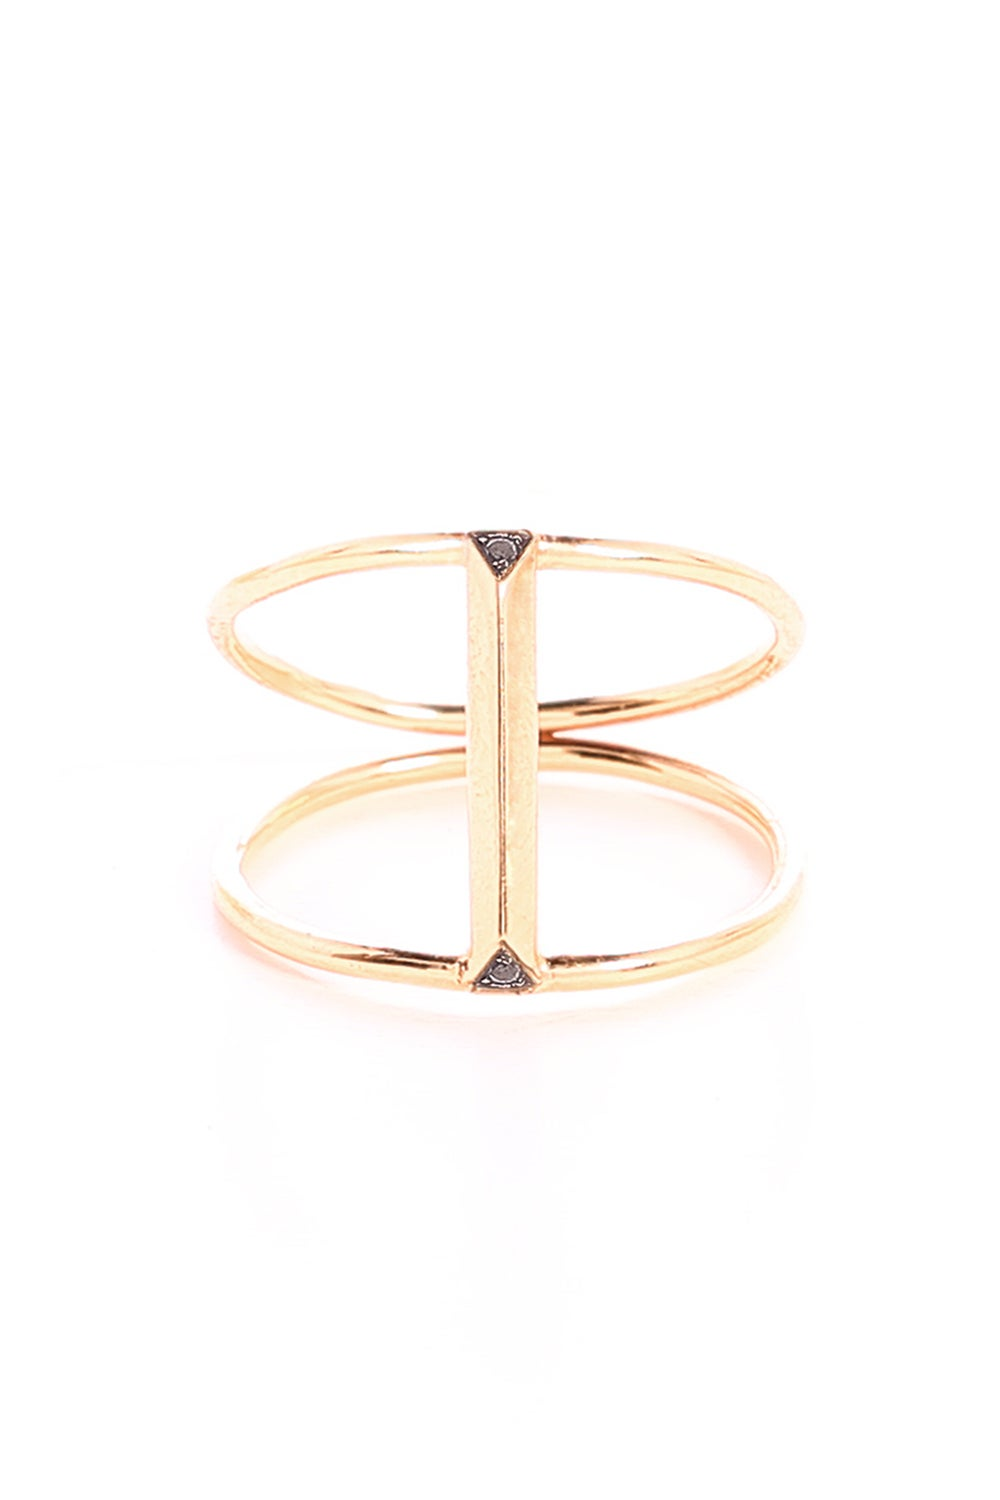 BLACK DIAMOND BAR BRIDGE RING